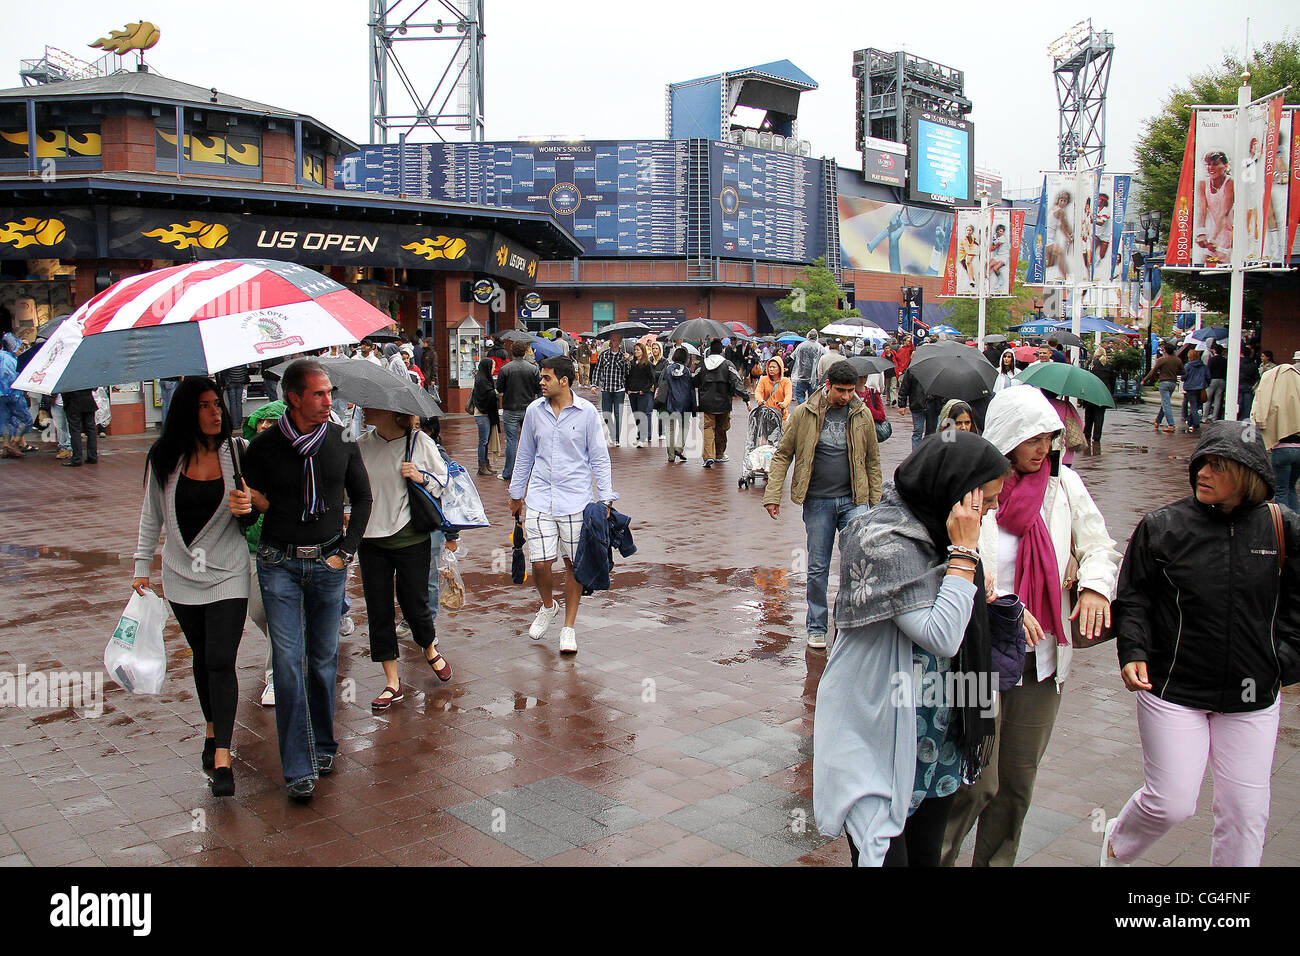 Fans brave the rain at the USTA Arthur Ashe Stadium in Flushing, Queens. The US Open men's tennis final championship - Stock Image